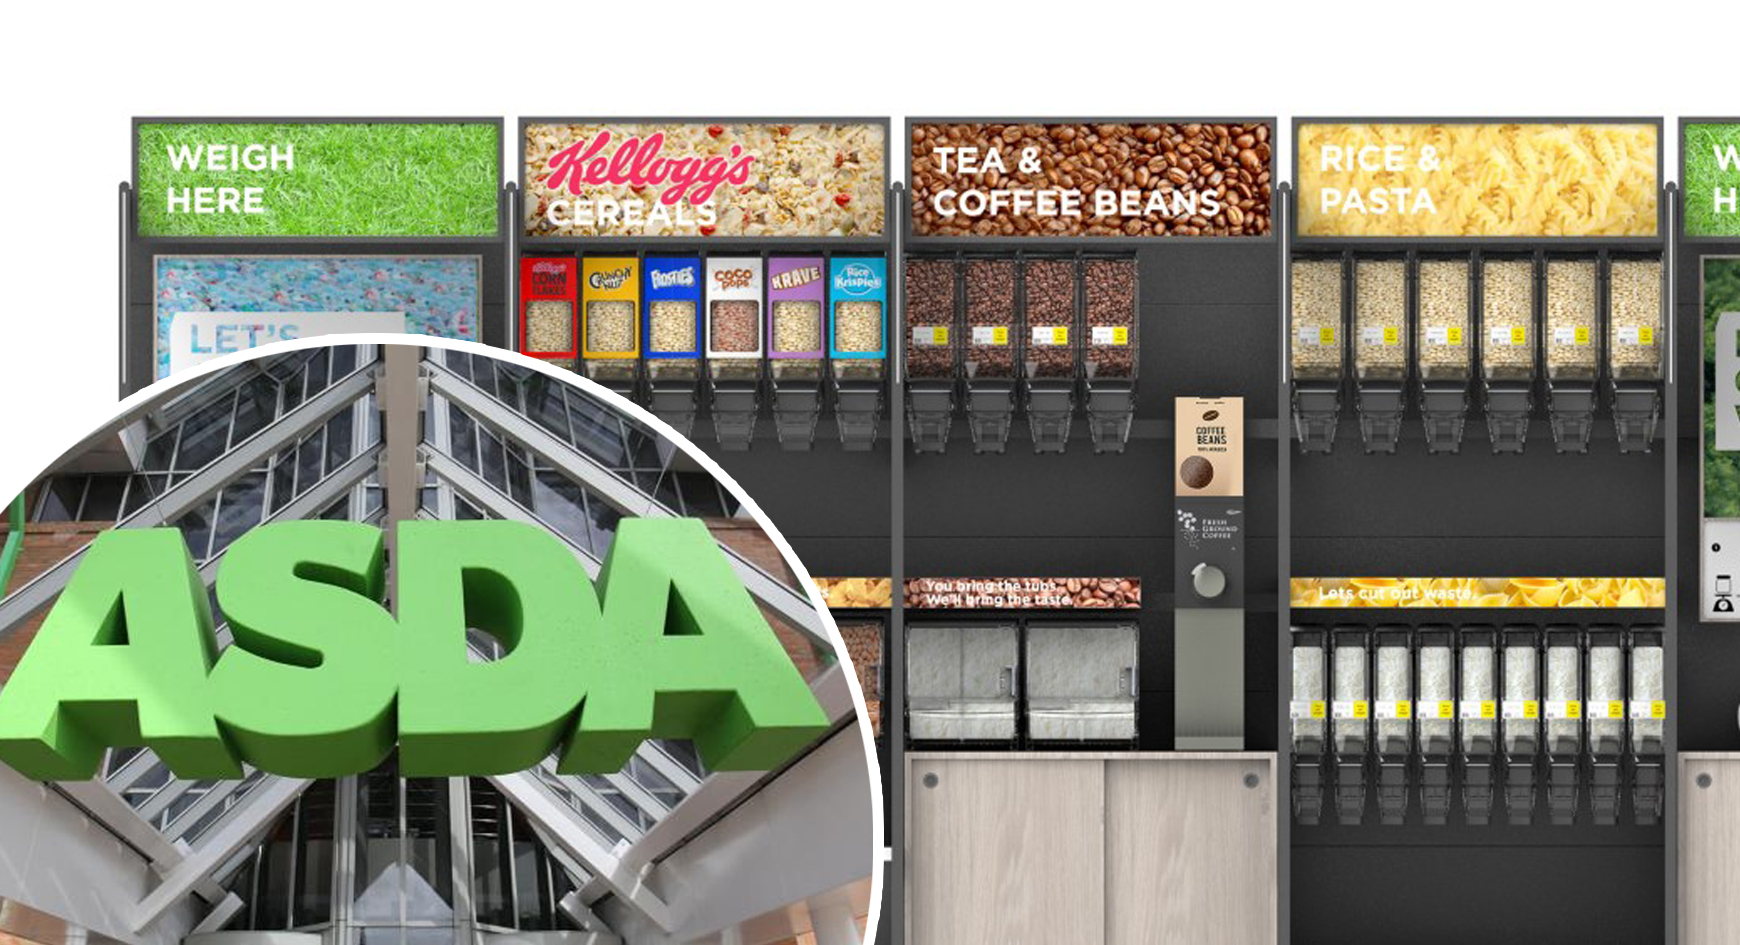 Asda launches first 'sustainability store' with naked florist, reverse vending machines and more loose produce